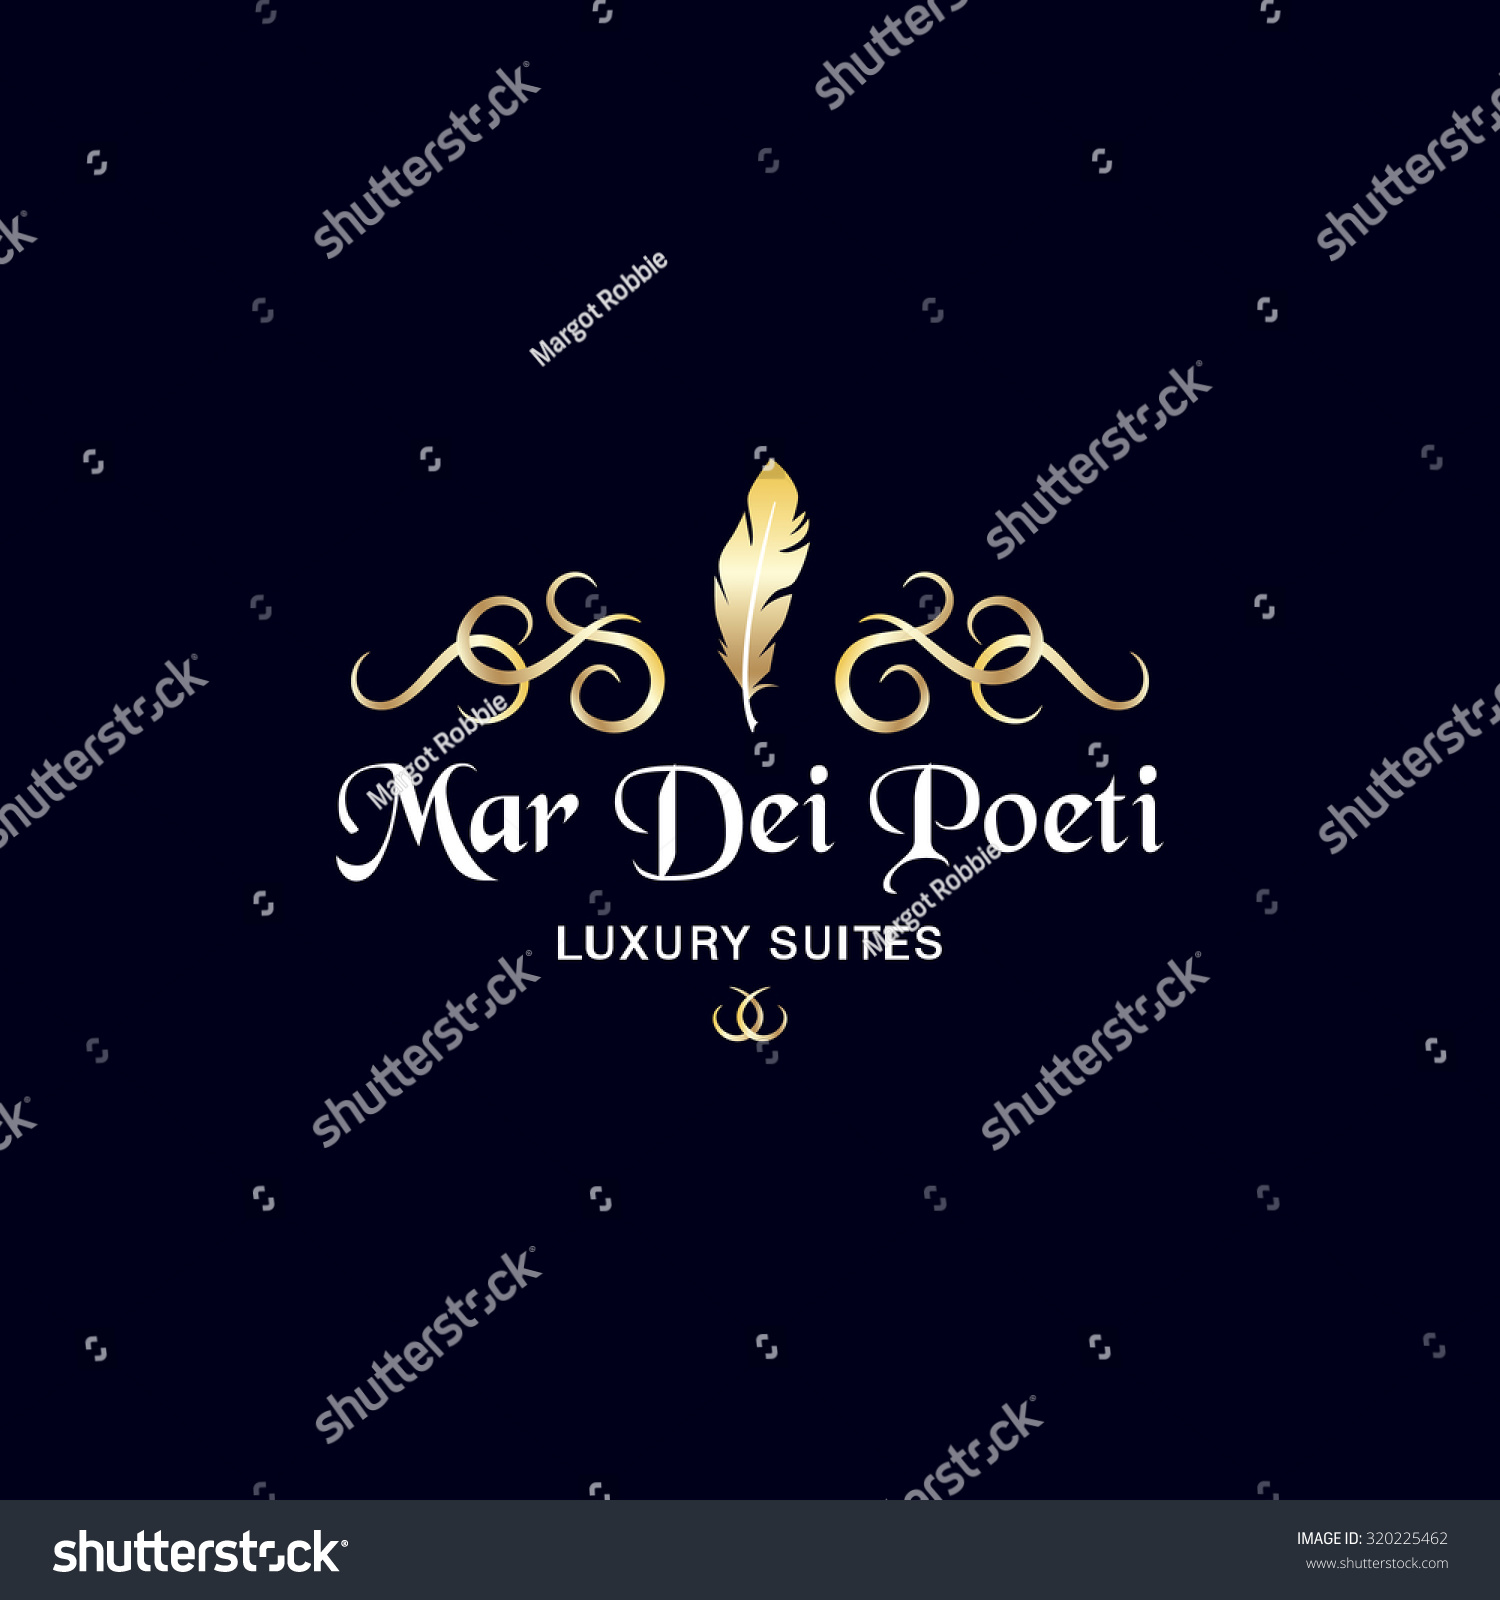 Luxury Suites Logo Vintage Golden Decoration Stock Vector 320225462